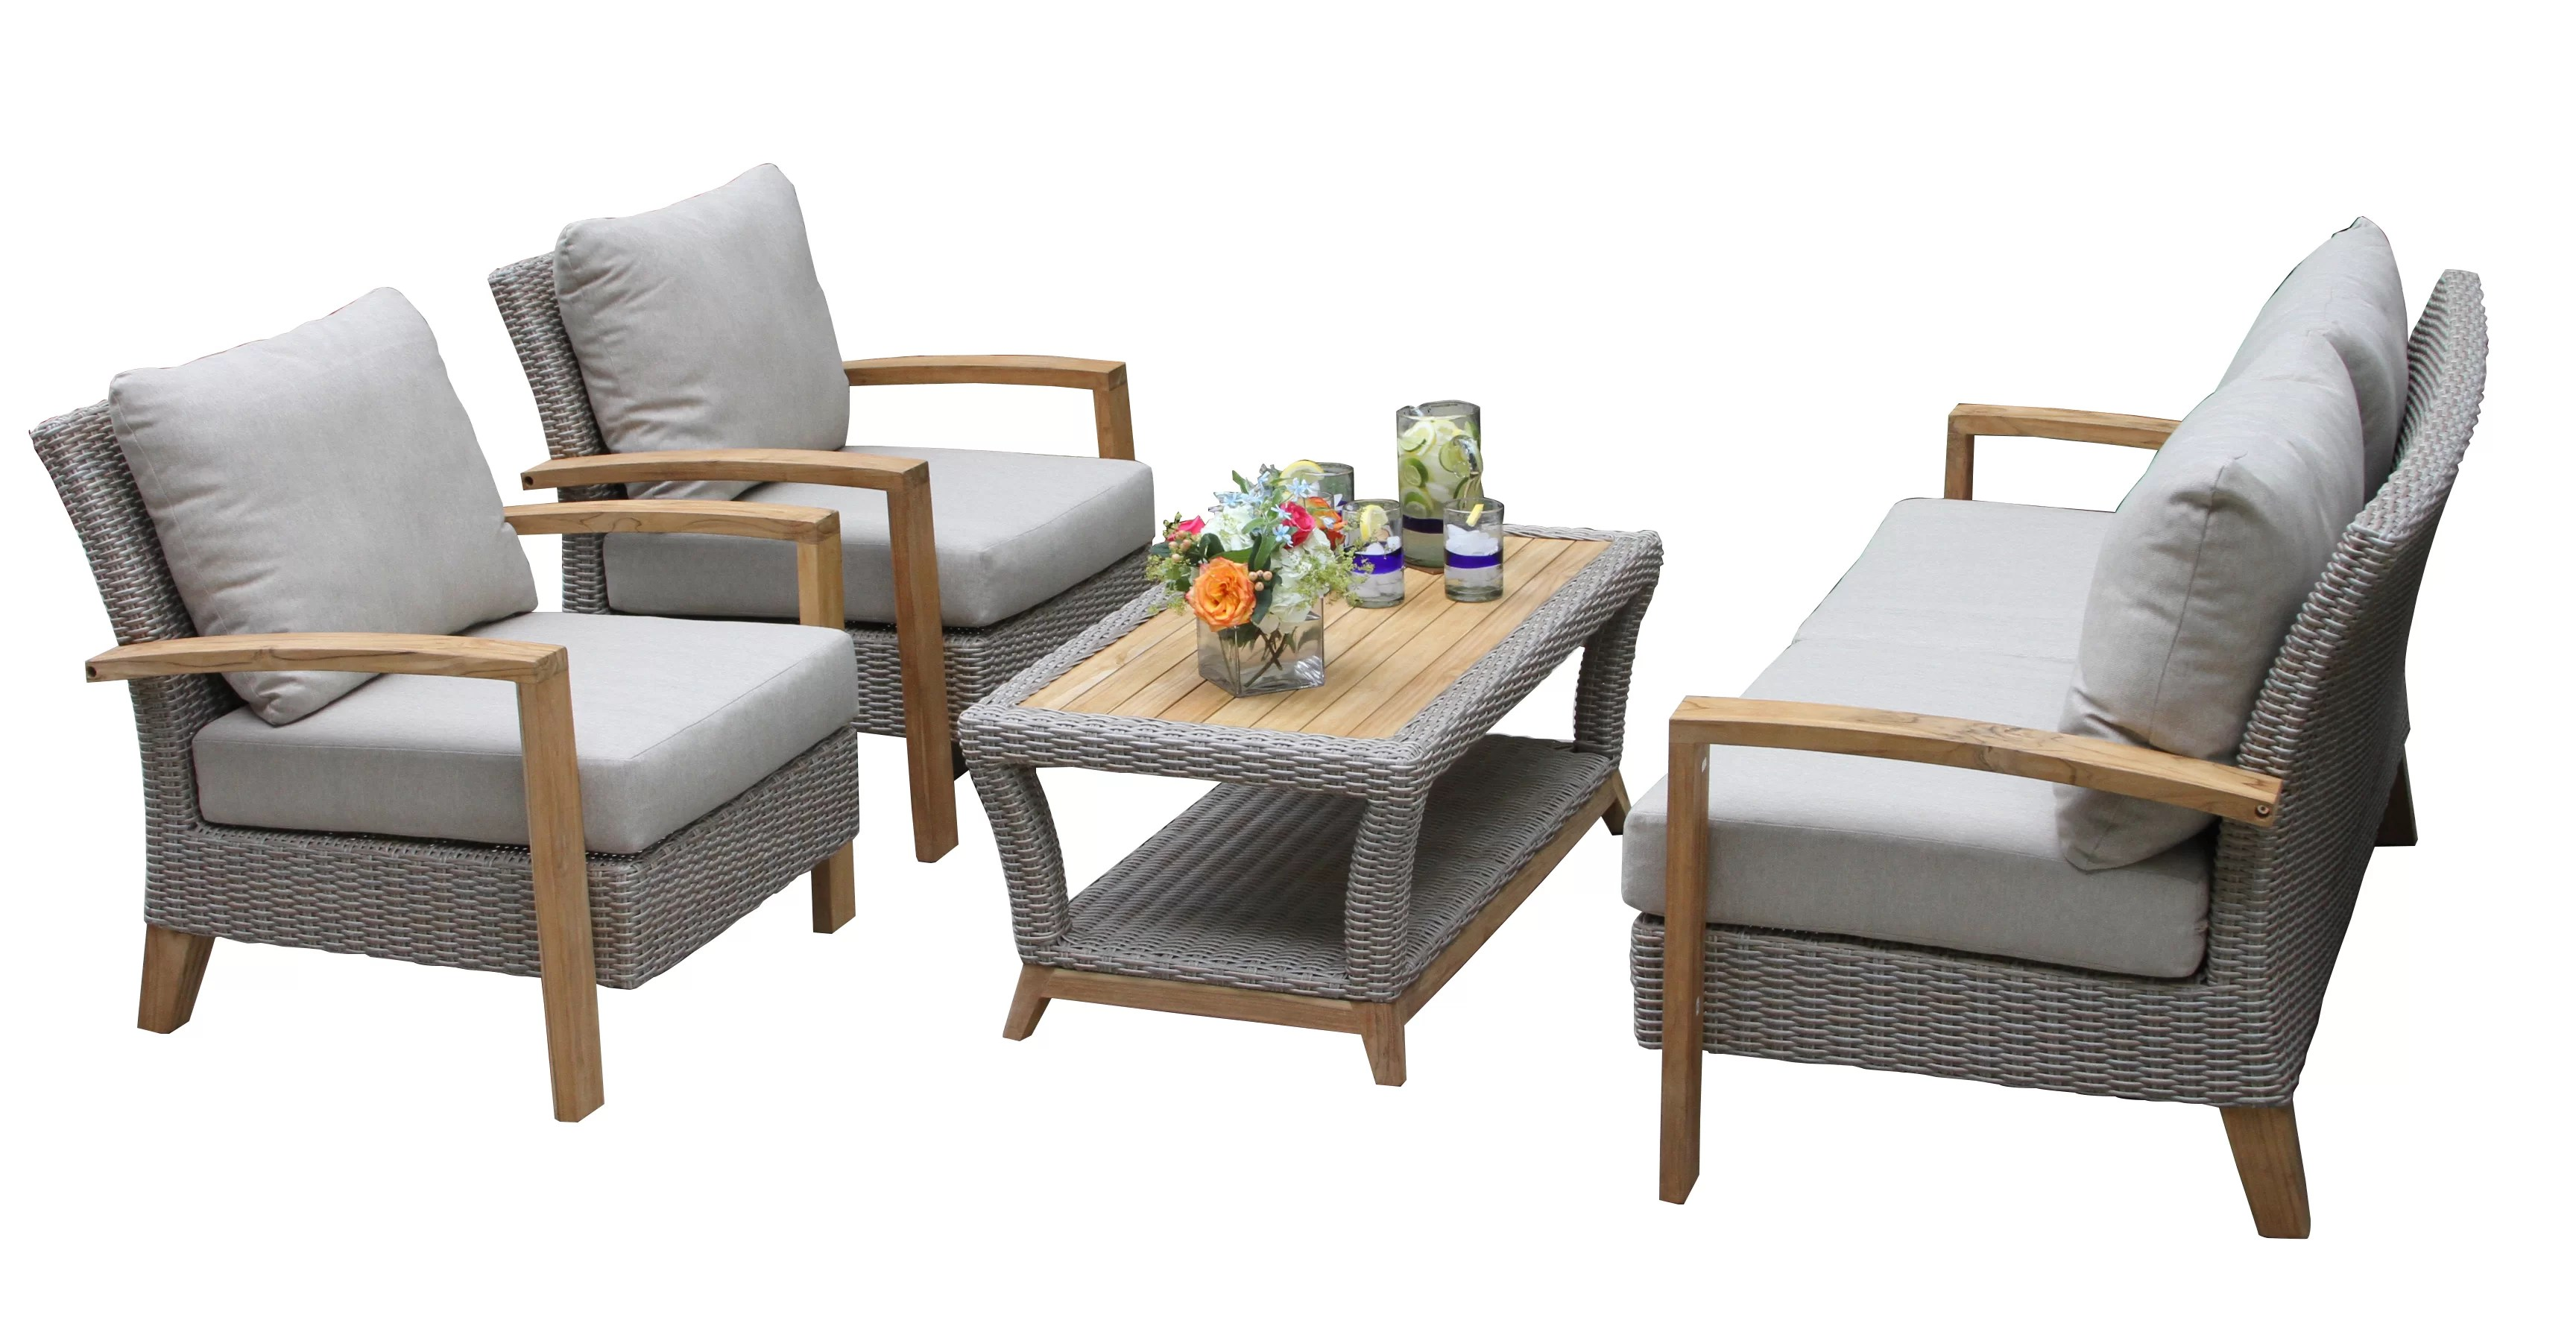 Rattan Sofa Near Me Dillard 4 Piece Rattan Sofa Seating Group With Cushions